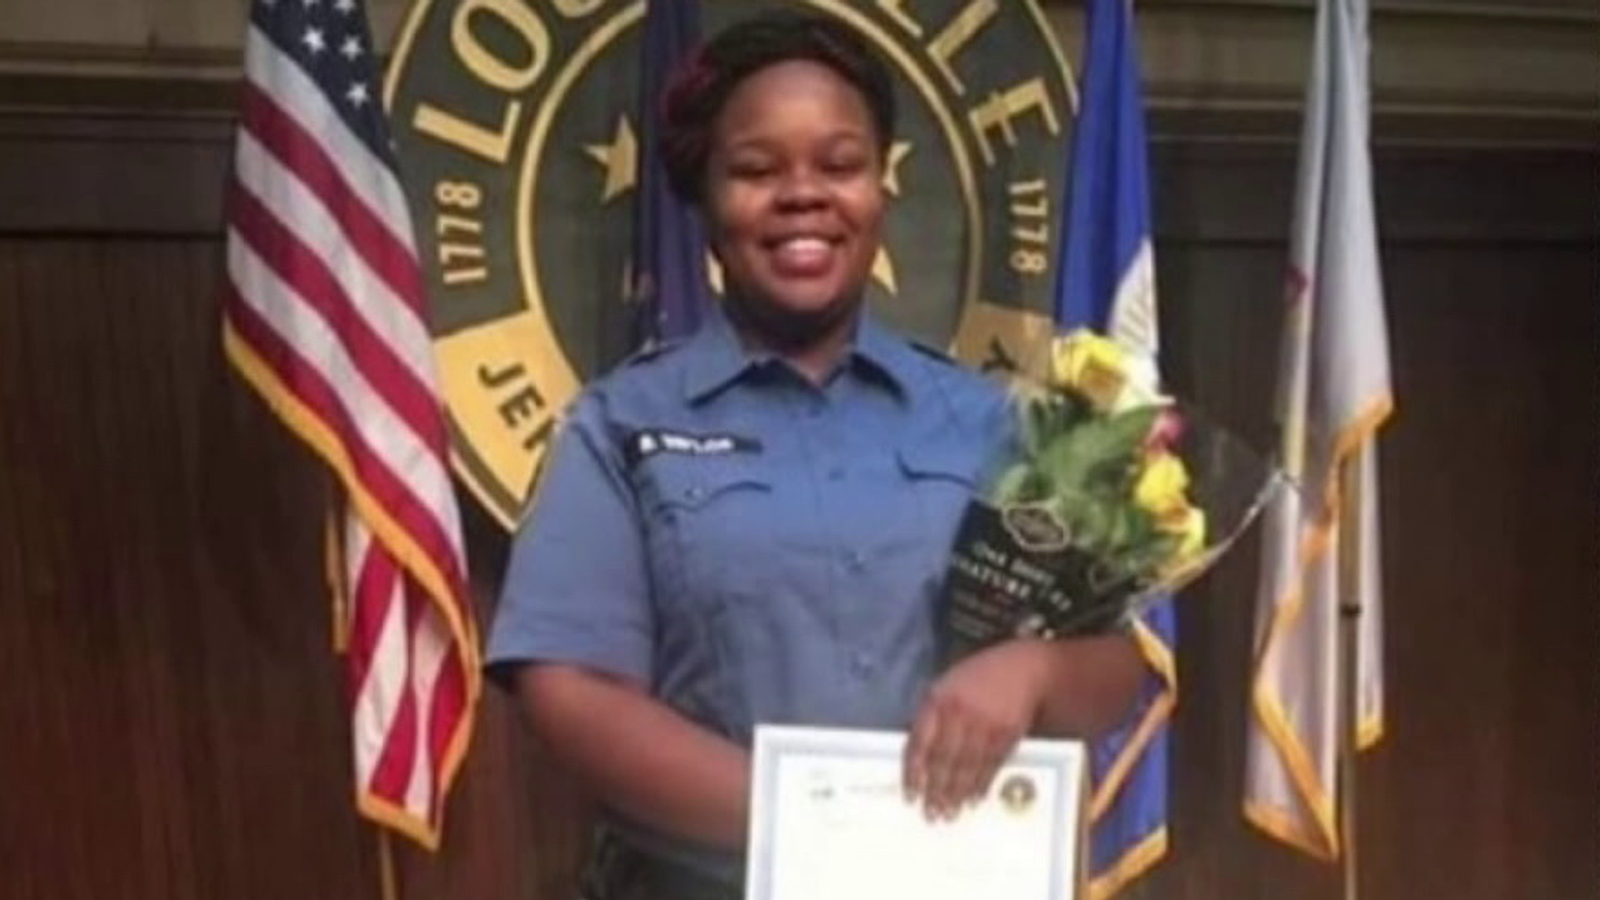 'This is not kneeling on a neck': Breonna Taylor raid officer compares shooting to George Floyd's death